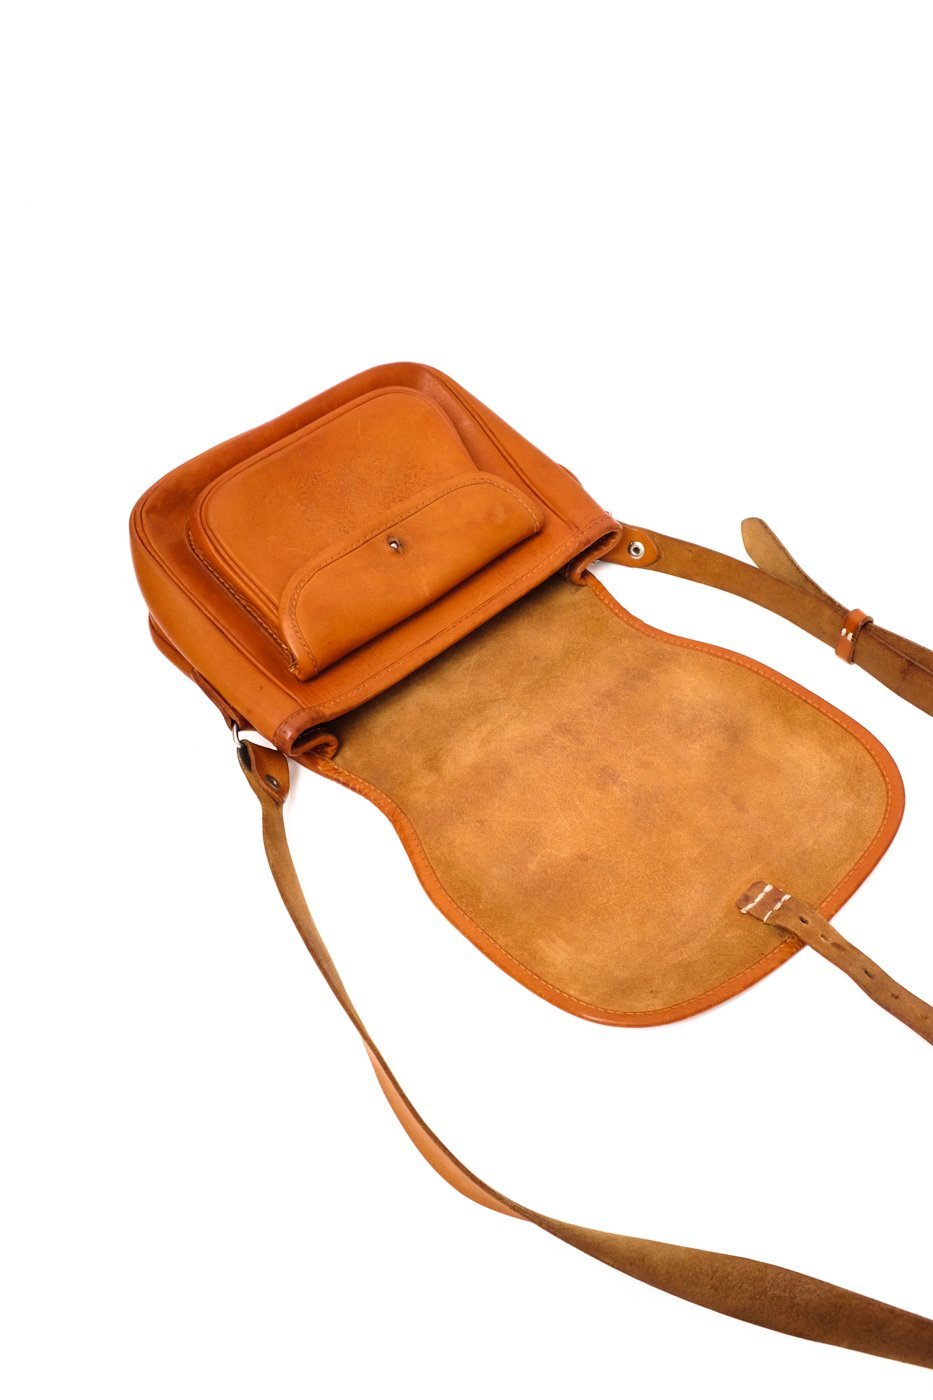 0514_SADDLE VINTAGE COGNAC LEATHER BAG